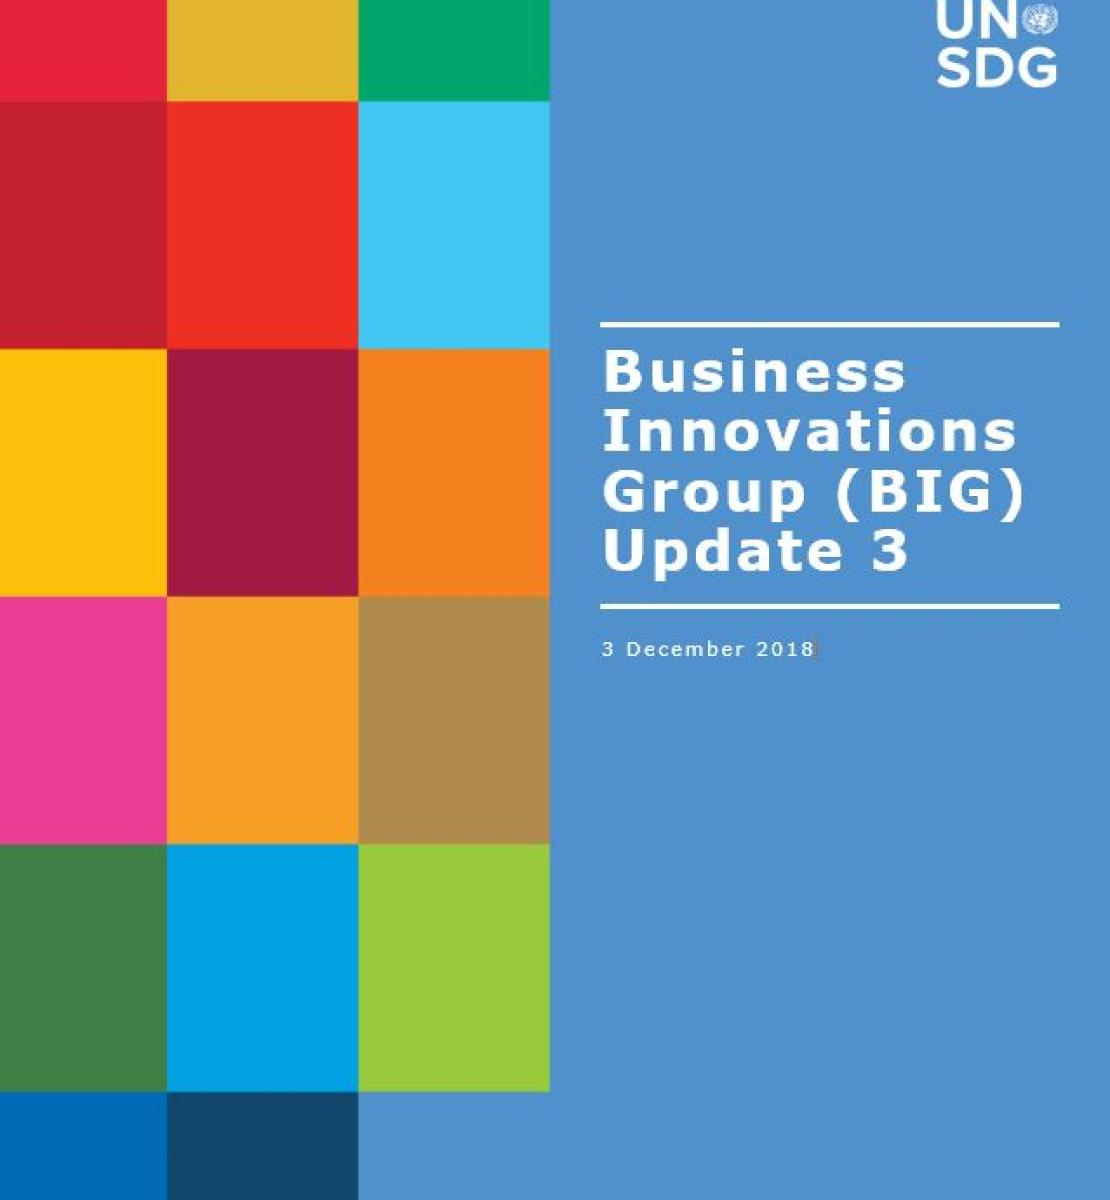 Cover shows BIG Update 3 title against a solid background by a grid of colourful rectangle grid.